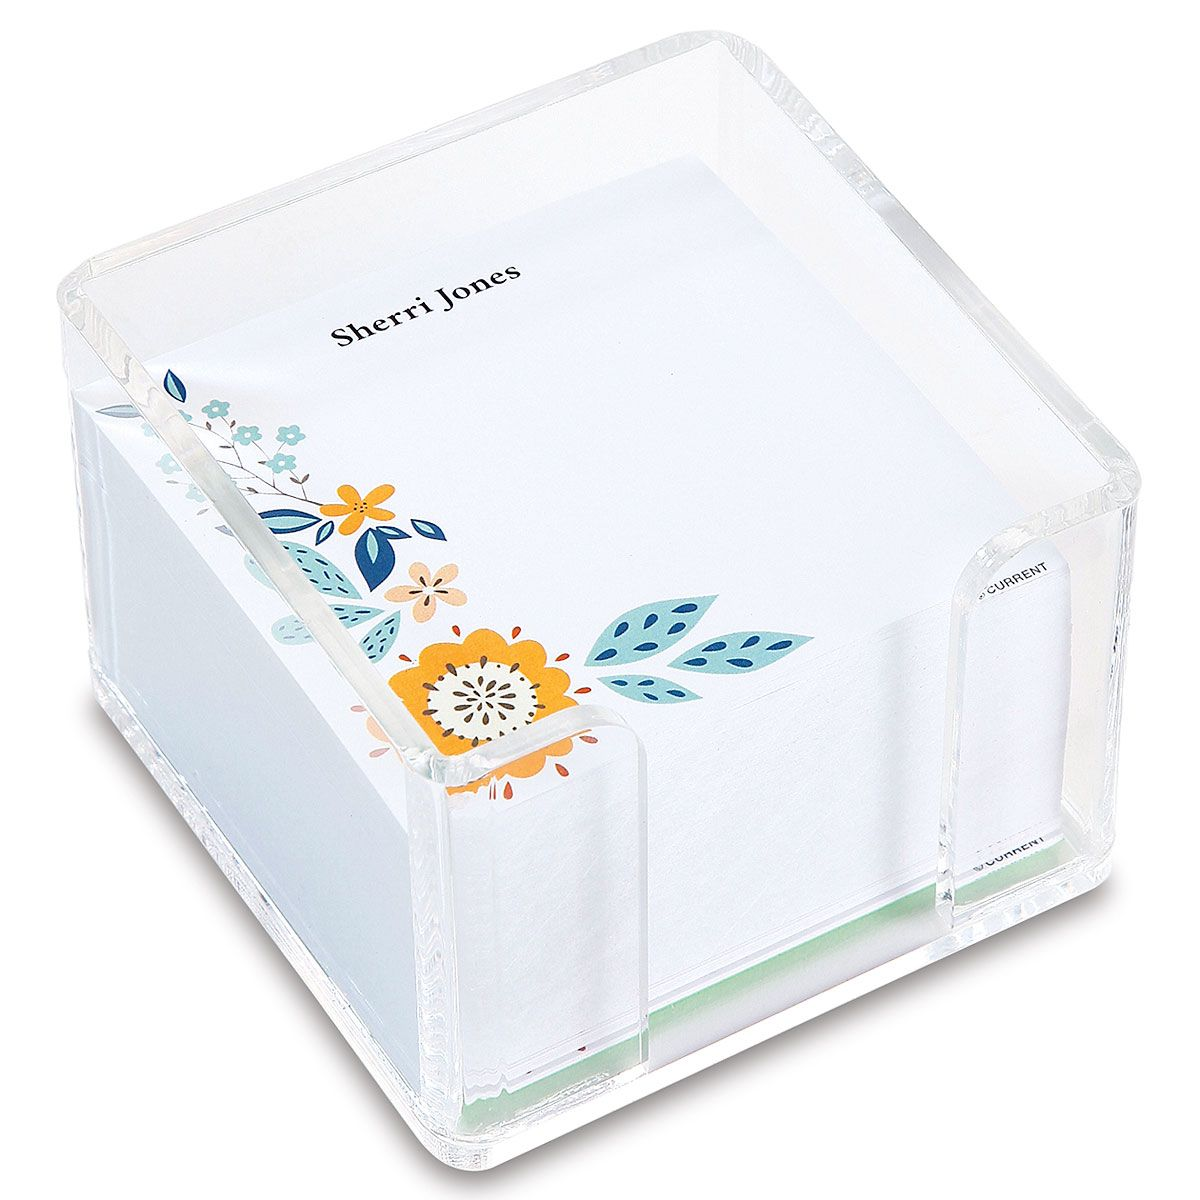 Scattered Flowers Personalized Notes in a Cube